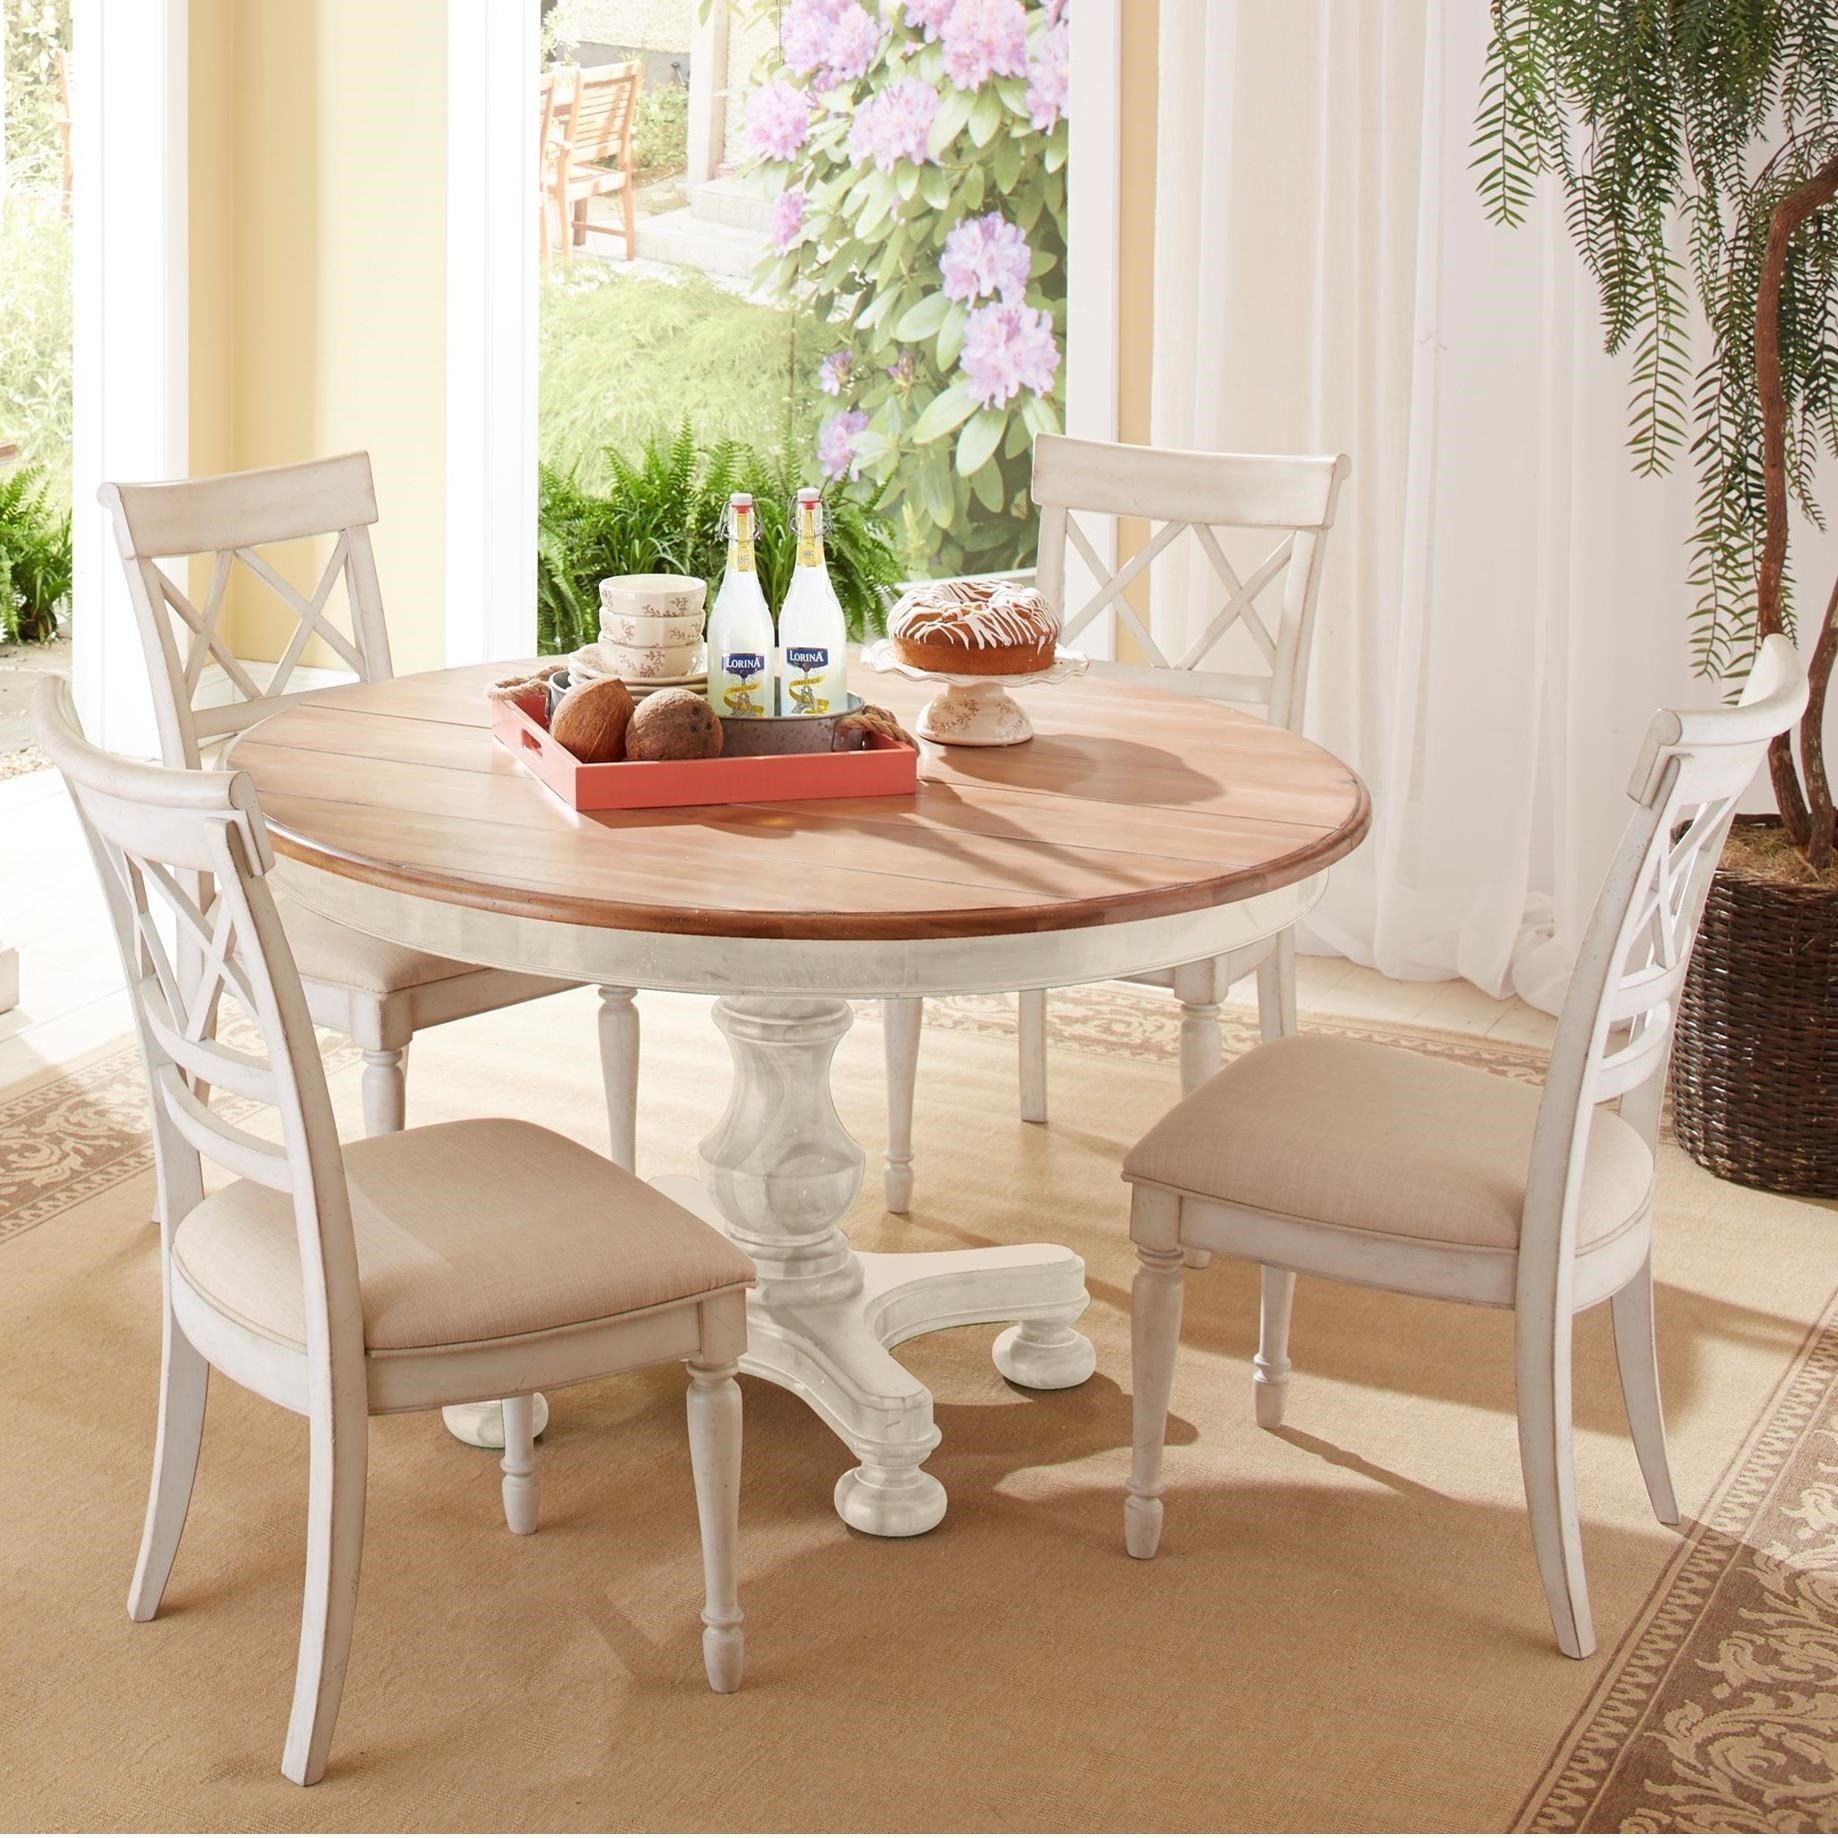 Cresent Fine Furniture Cottage 5 Piece Table and Chair Set - Item Number: 201-151+151P+4x158